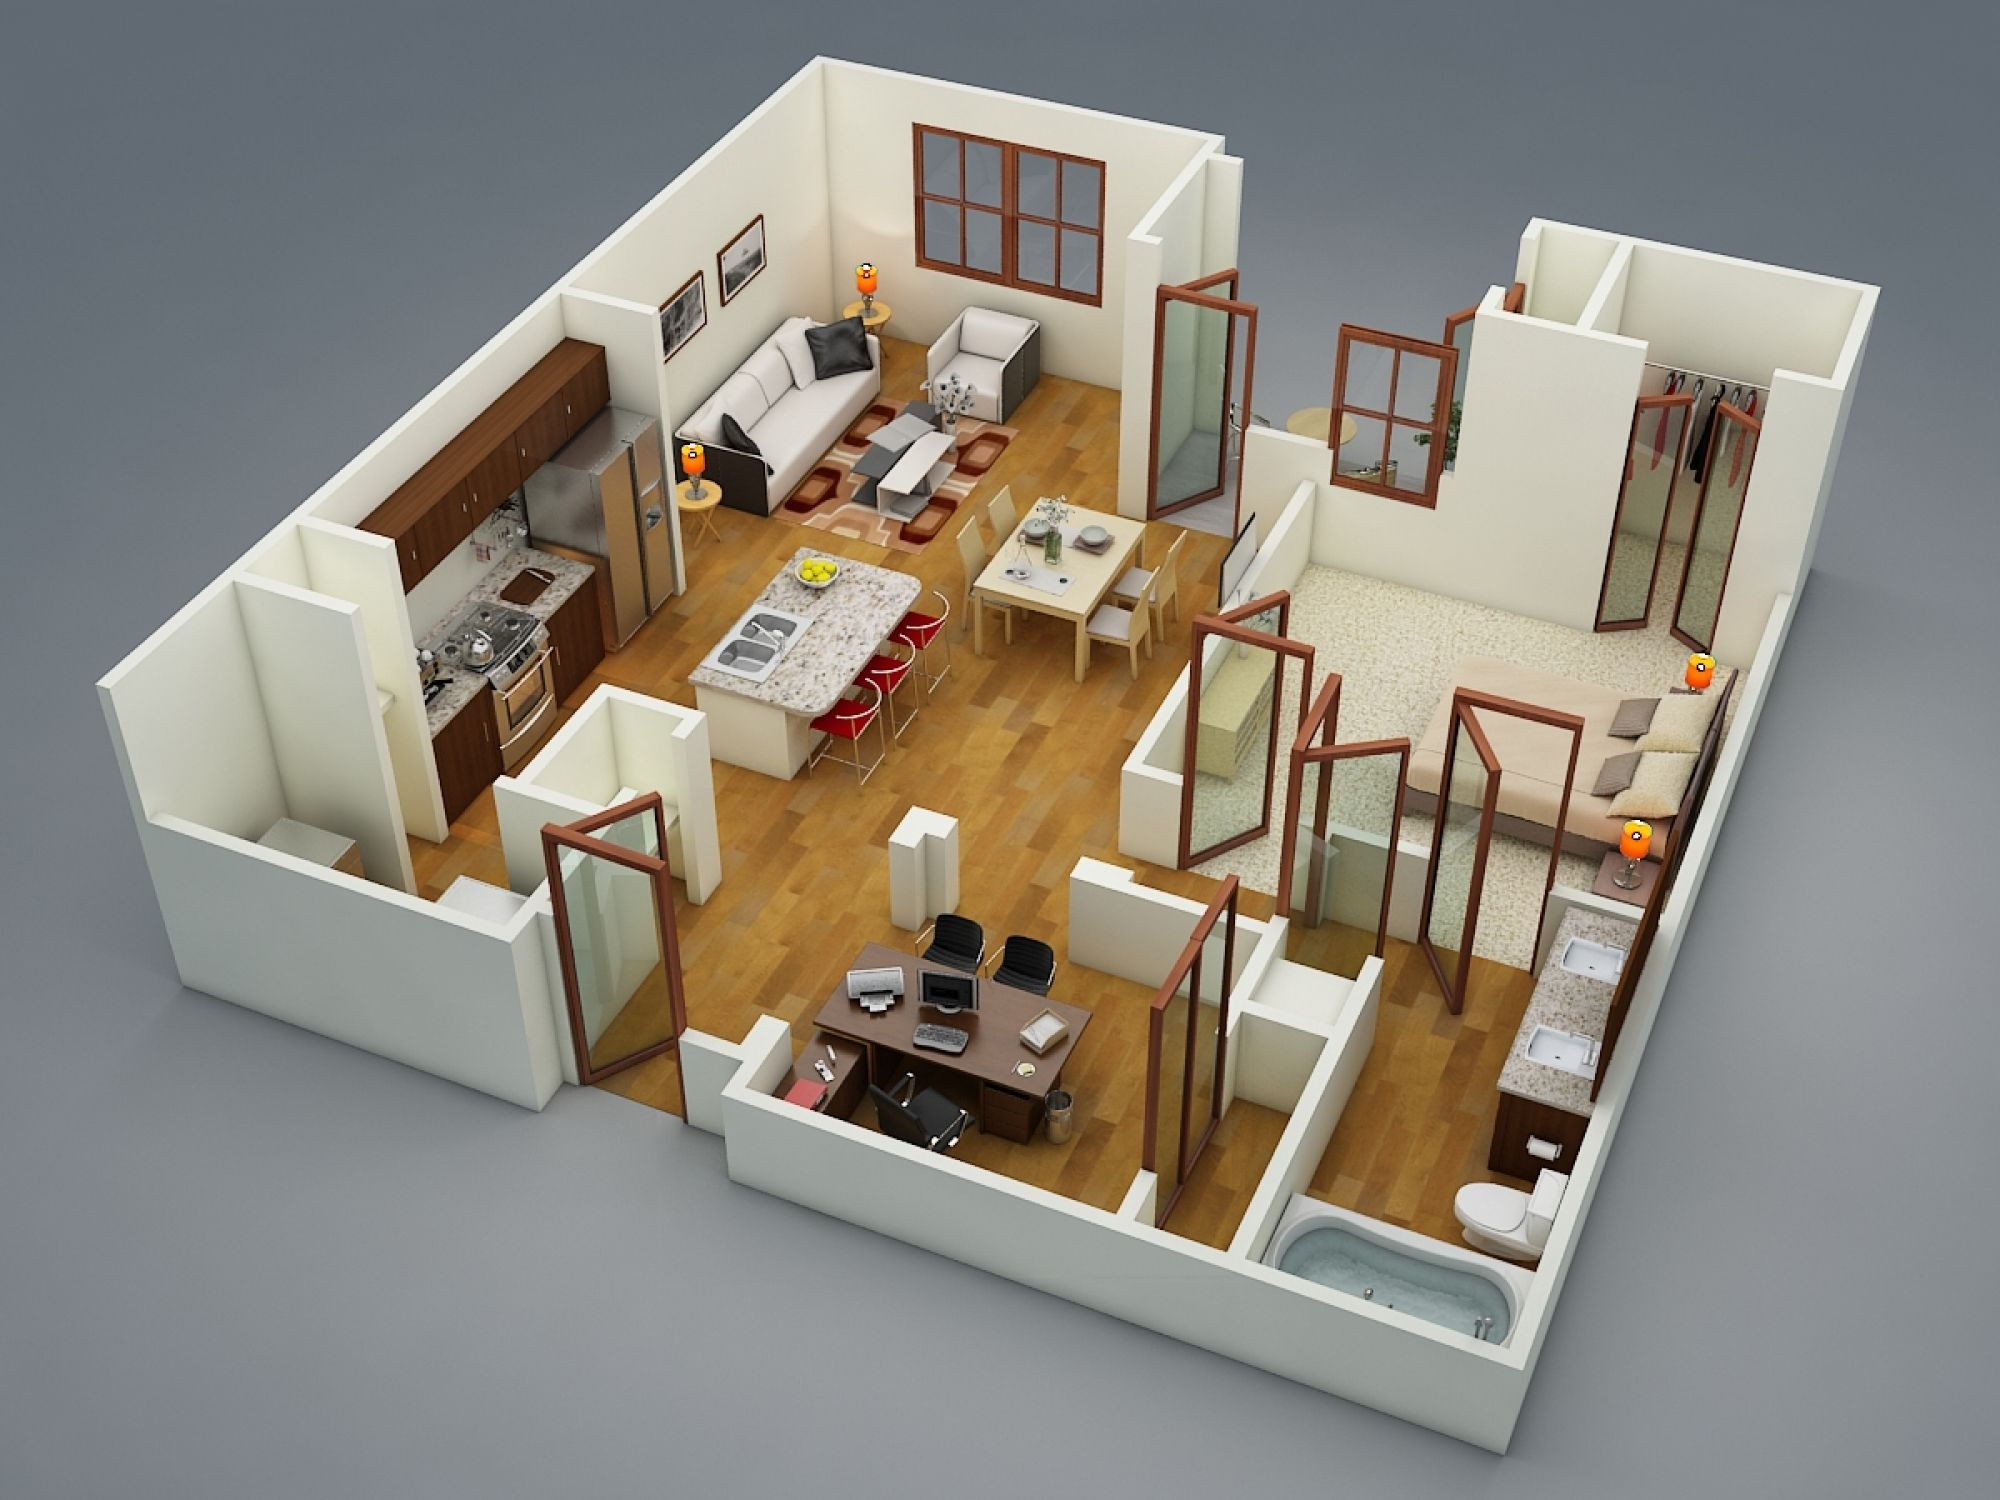 1 Bedroom 2 Bathroom House Plans 1 Bedroom Apartment House Plans